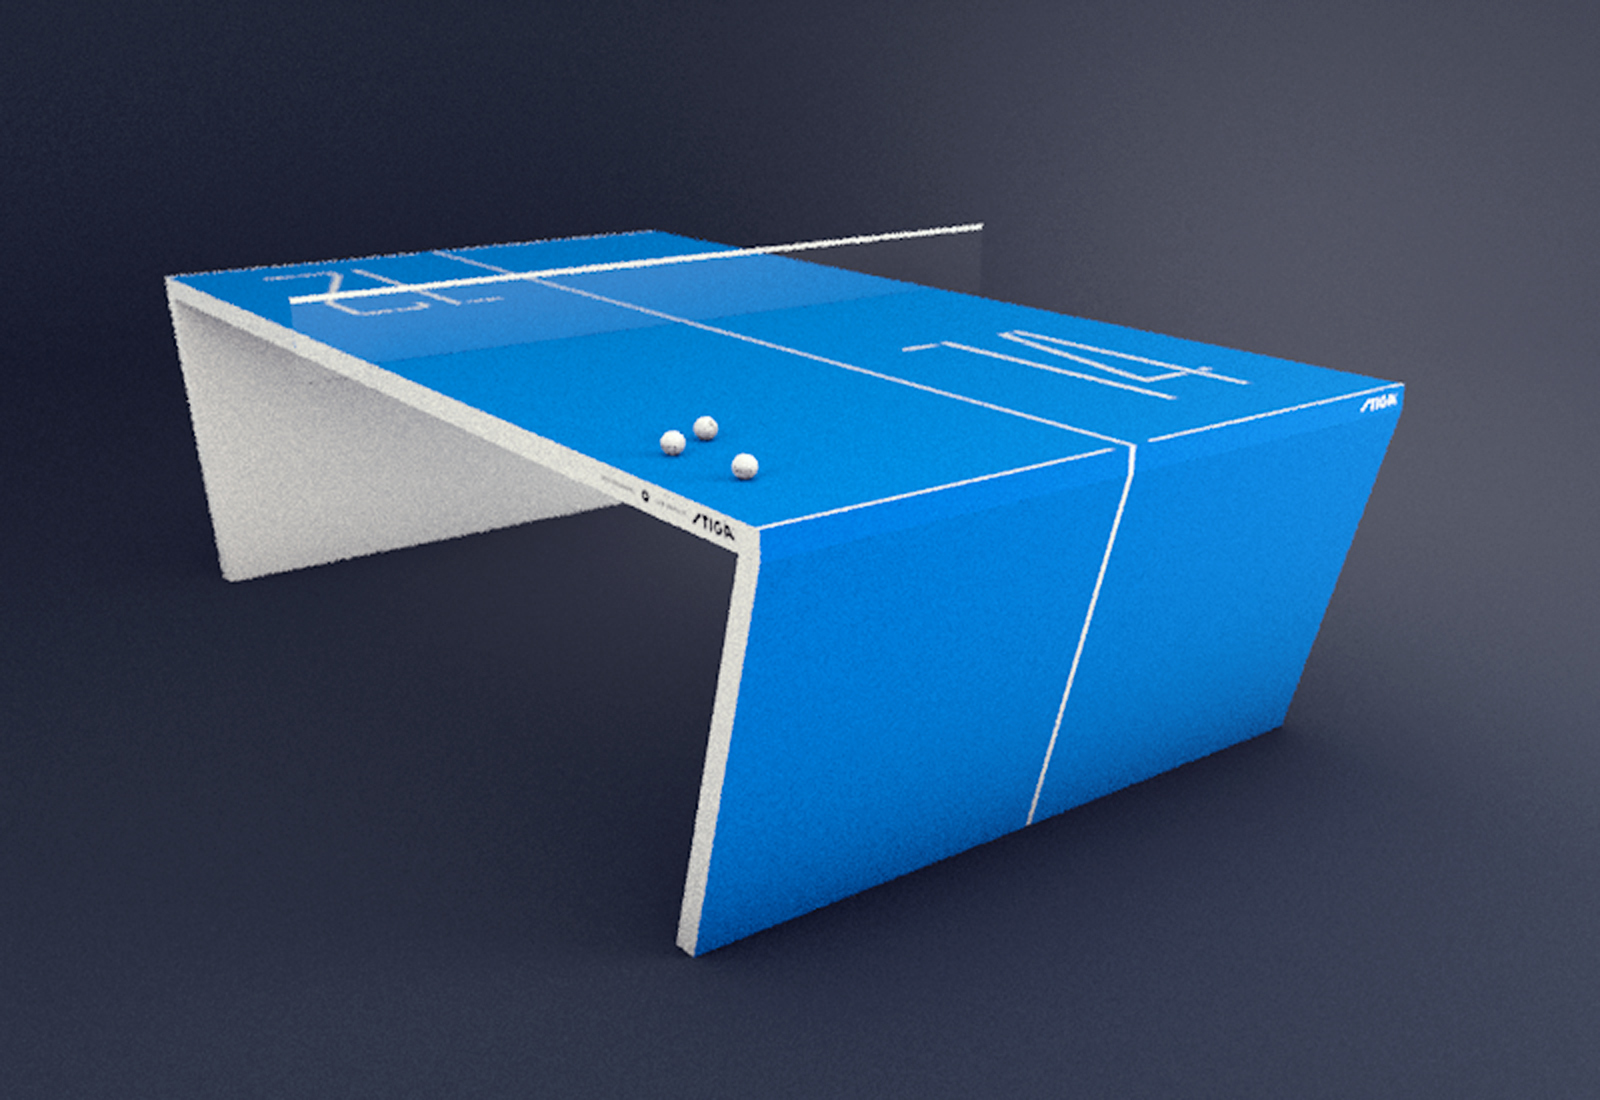 U201cWaldneru201d U2013 The Next Generation Ping Pong Table, Is Made With An Advanced  Computer System Integration. The Table Has A Multi Touch Surface, Which  Responds ...